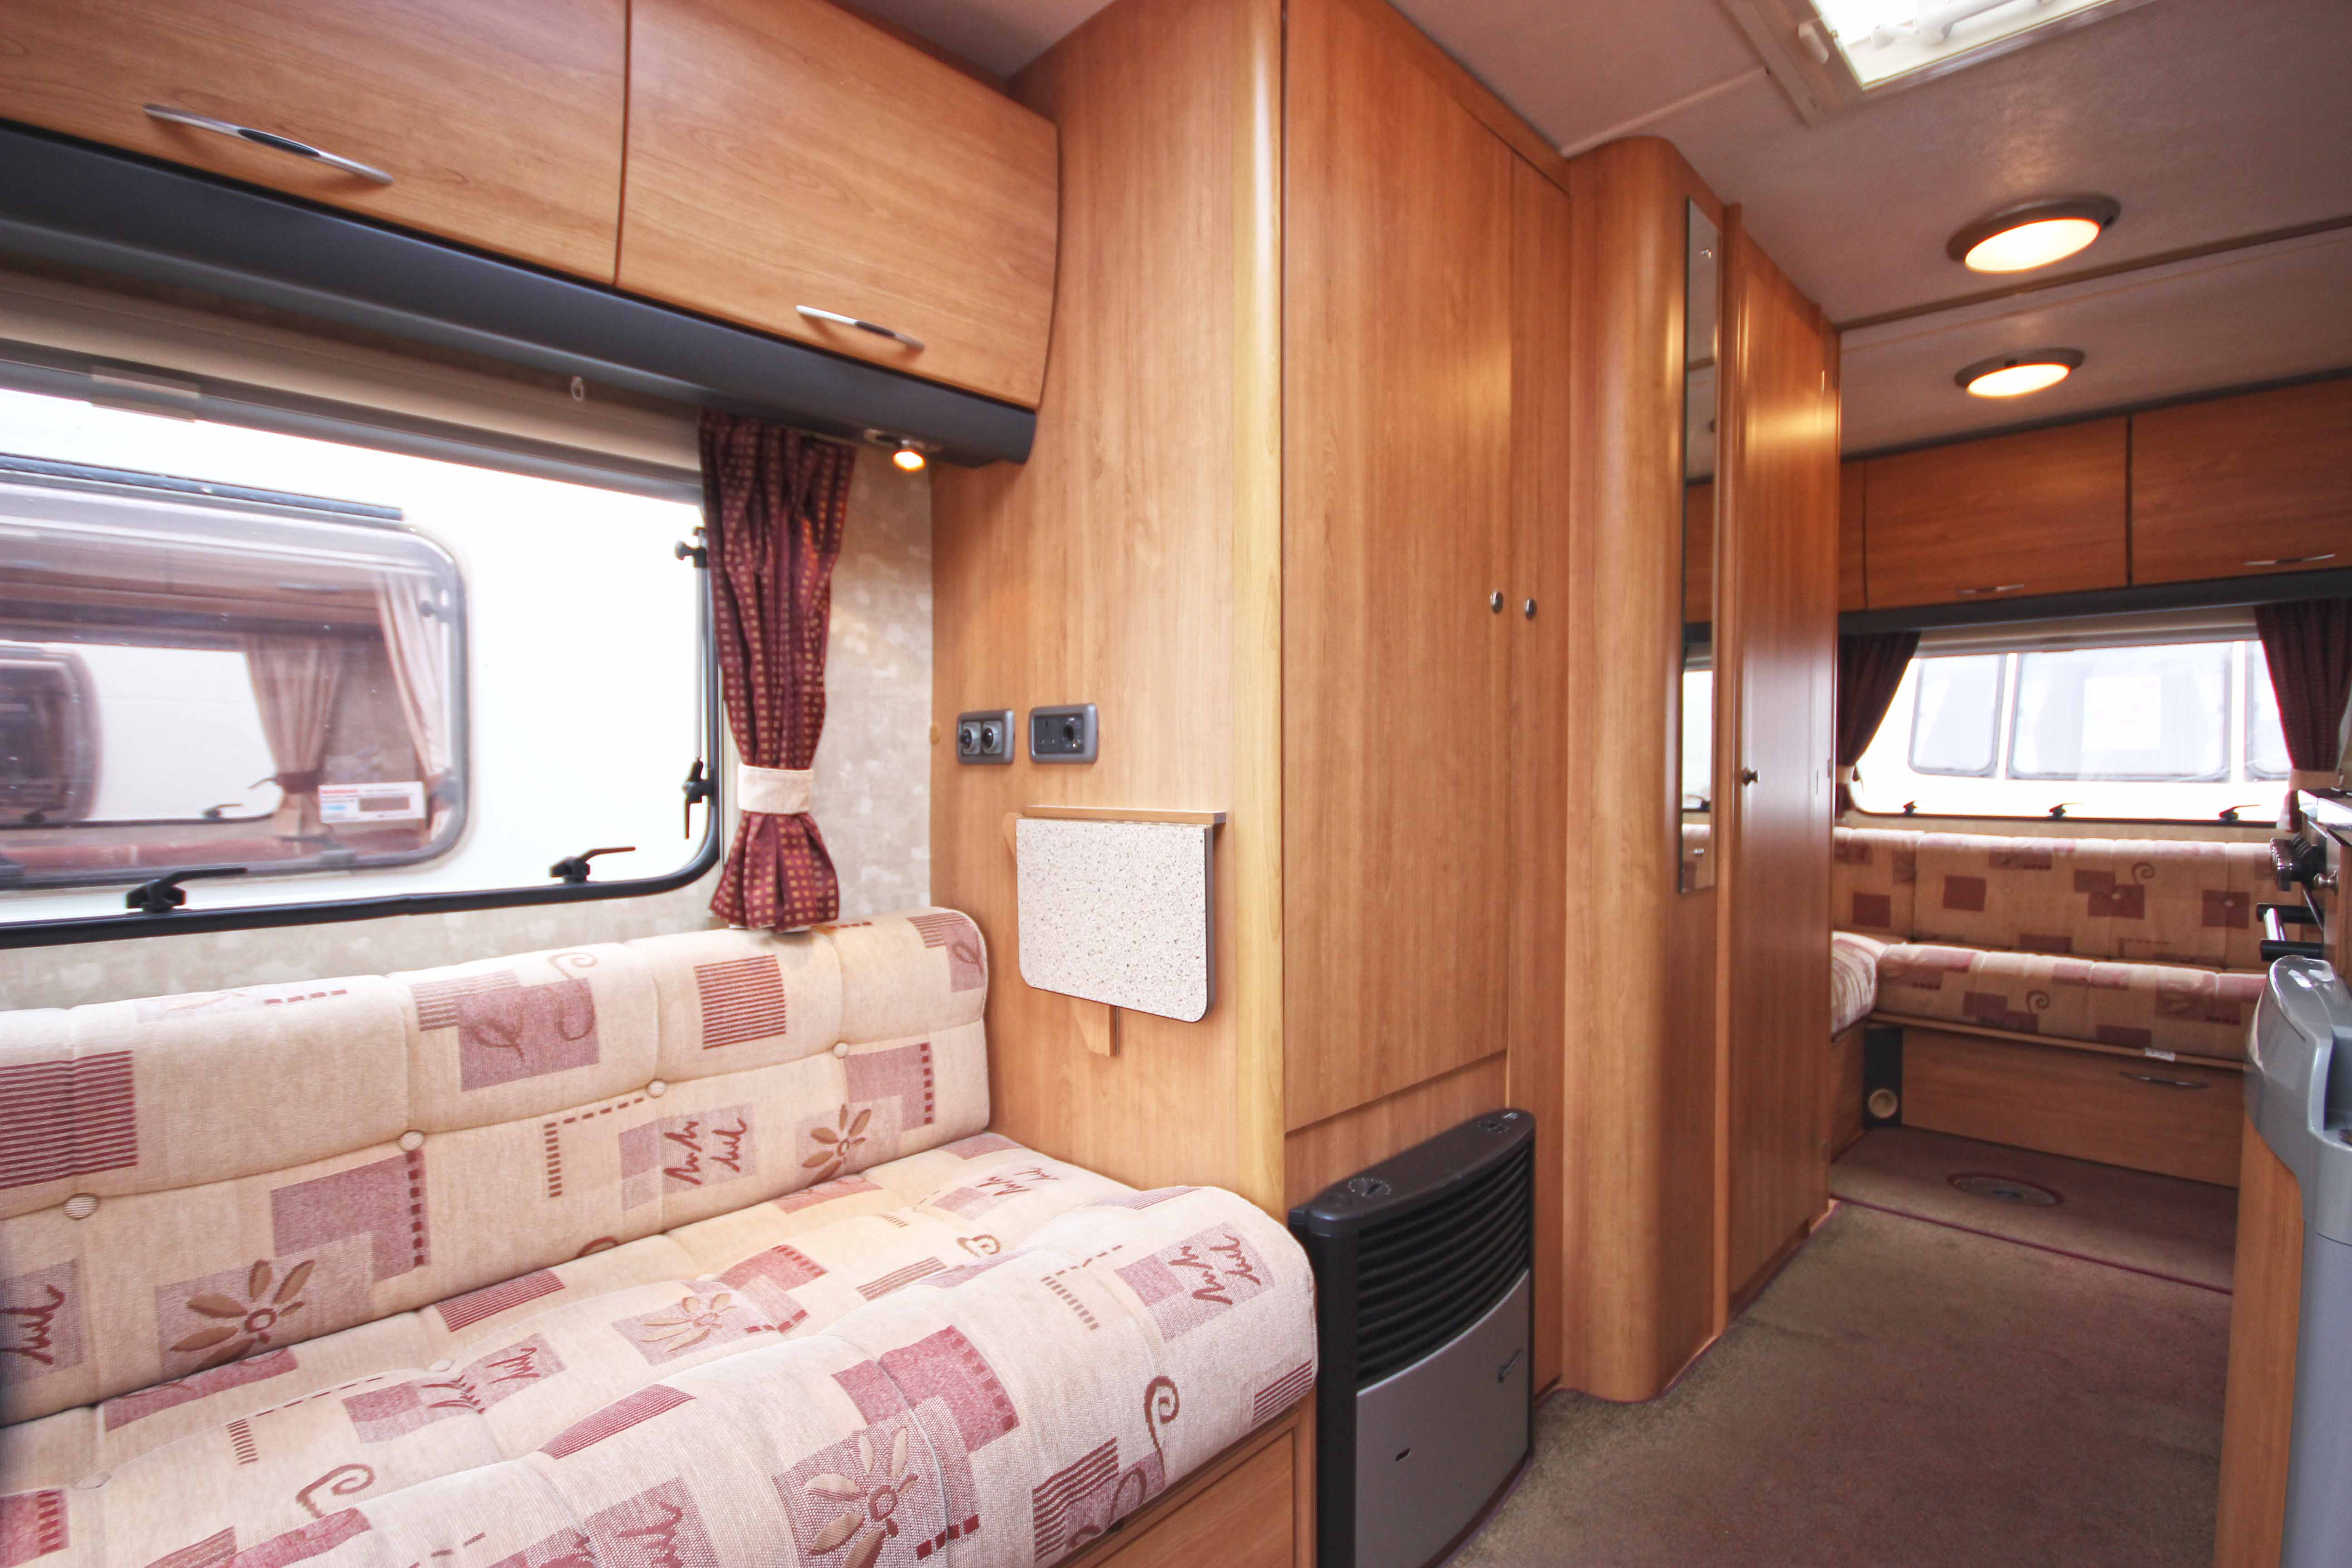 Kina Campers 8 4 5 berth Ace Jubilee Viceroy 2